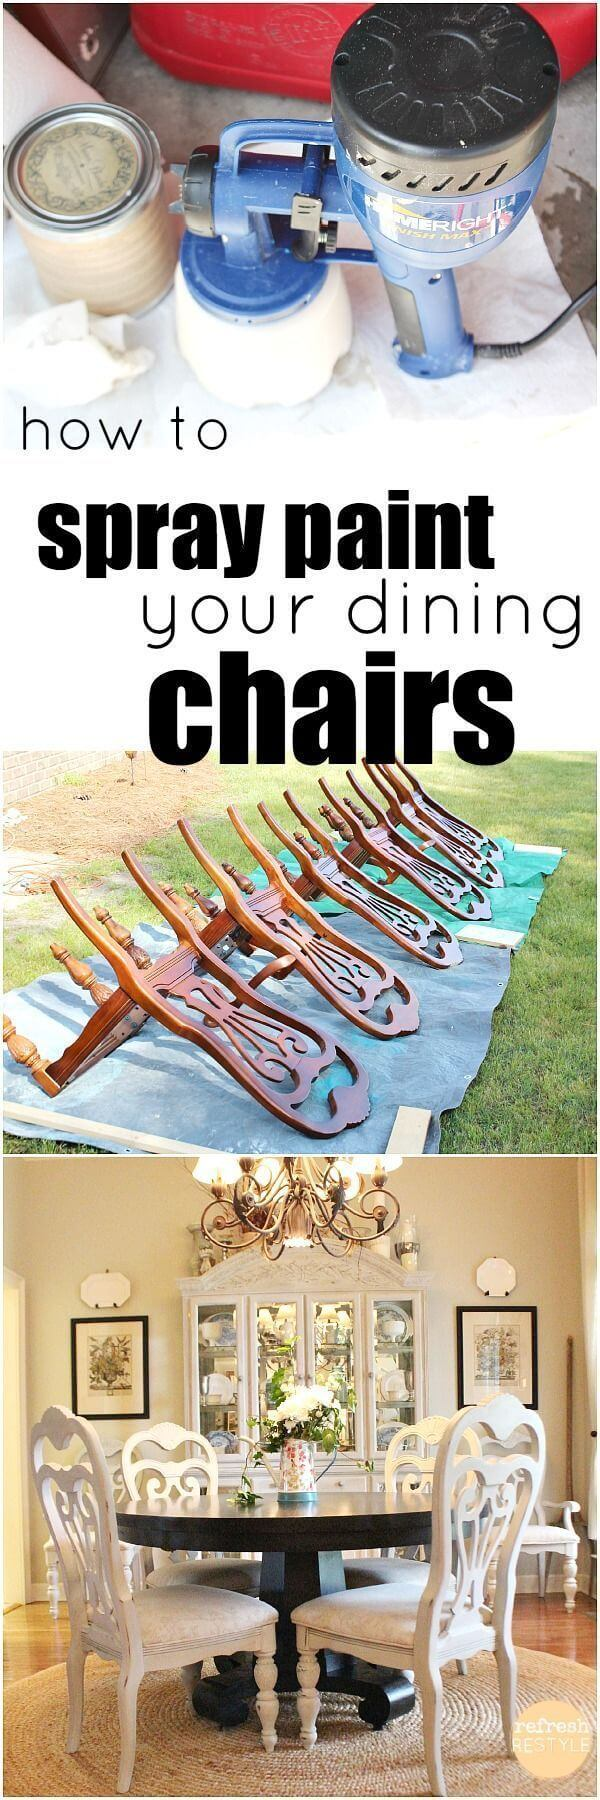 Transform Your Dining Chairs in a Day